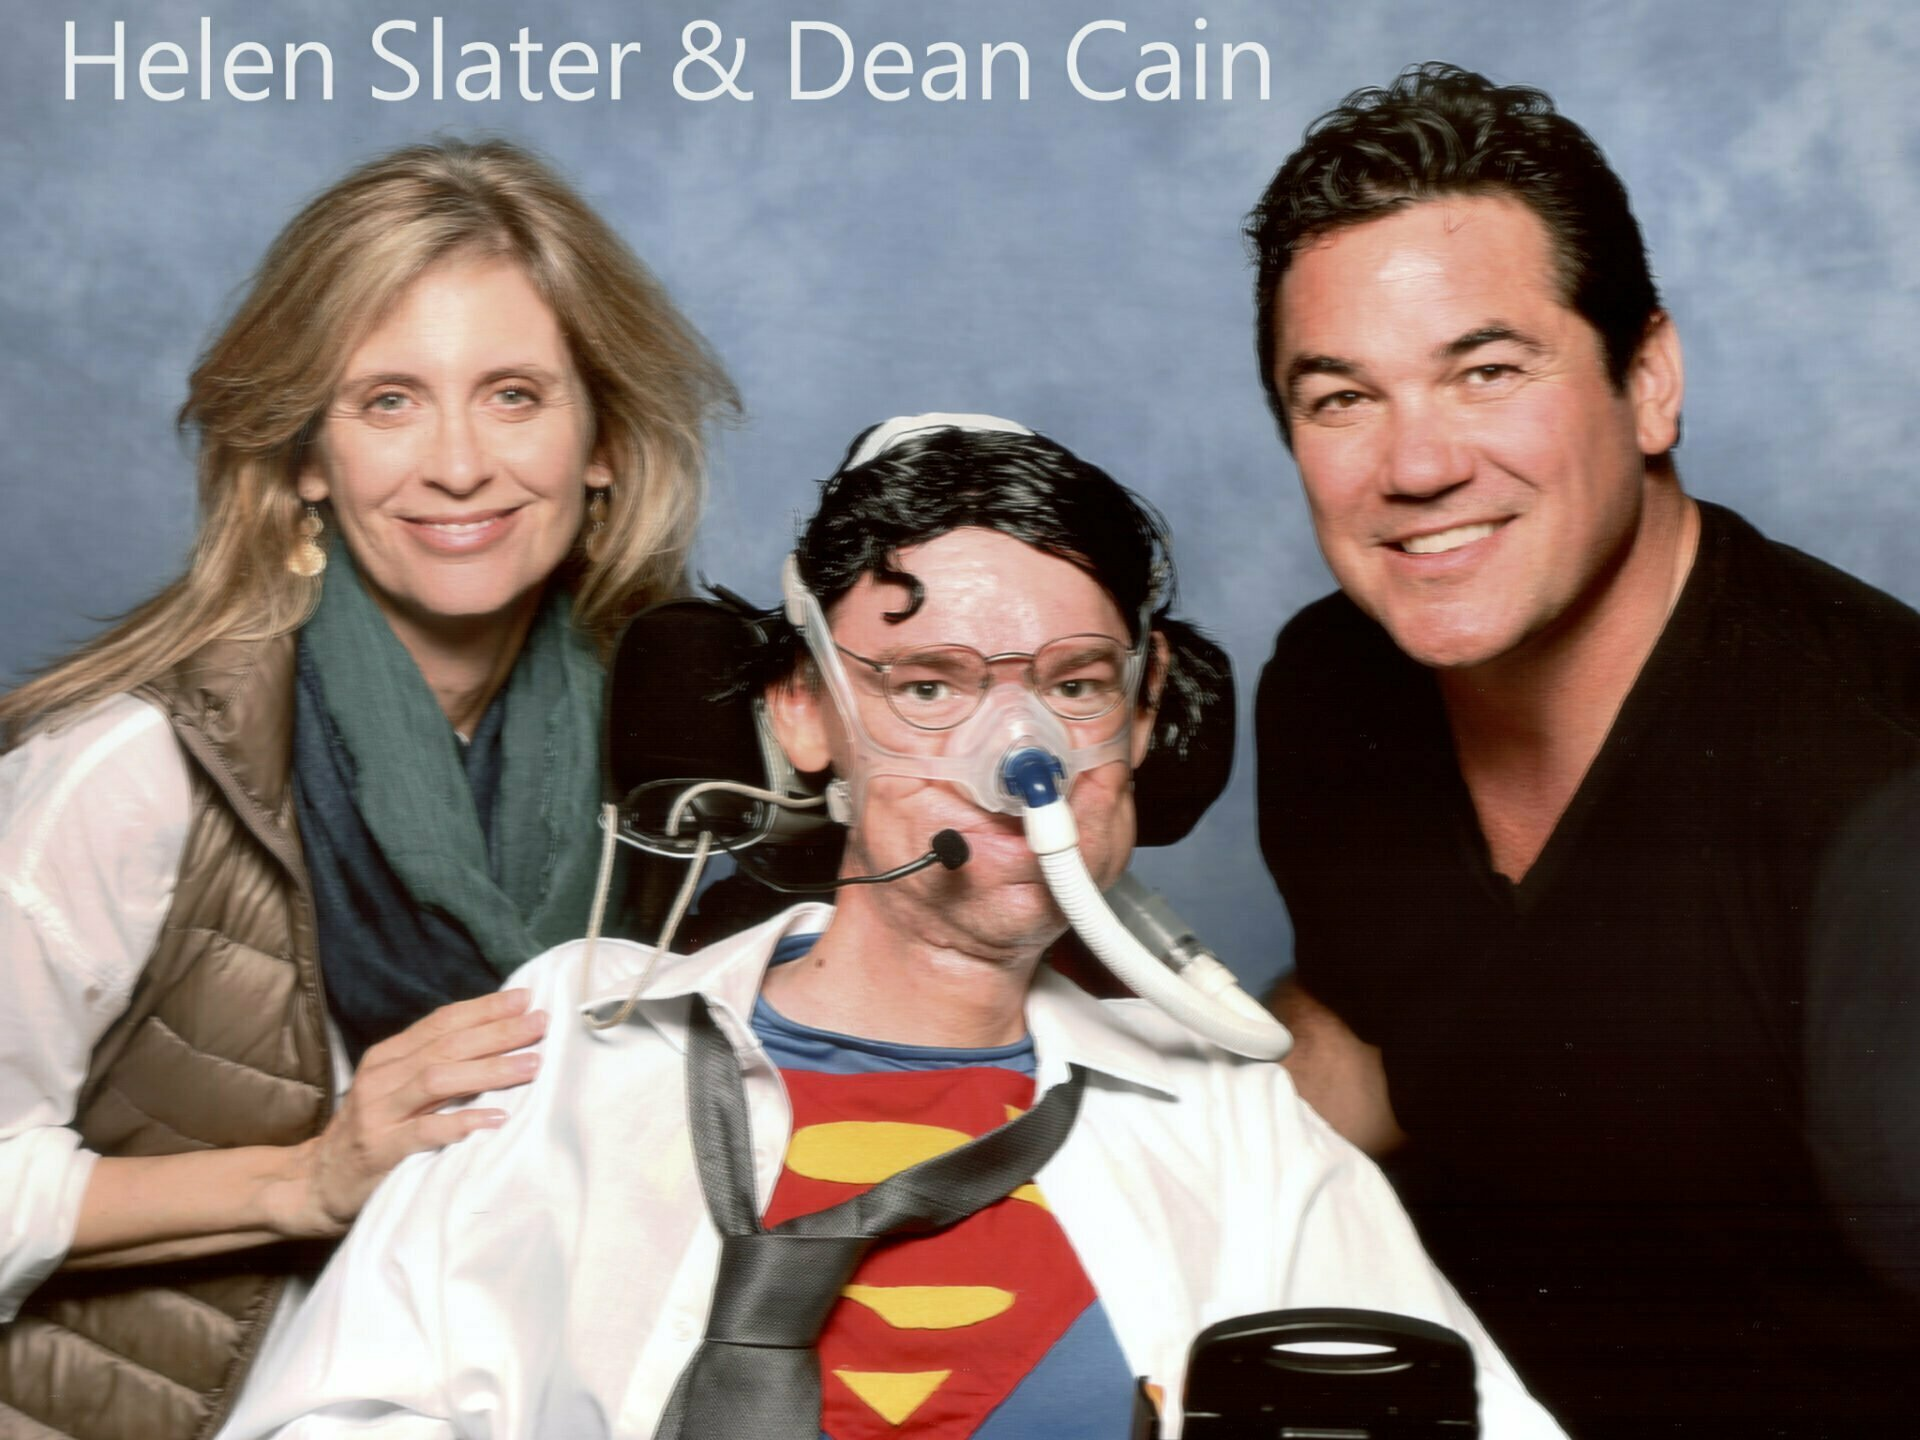 Helen Slater and Dean Cain 2017